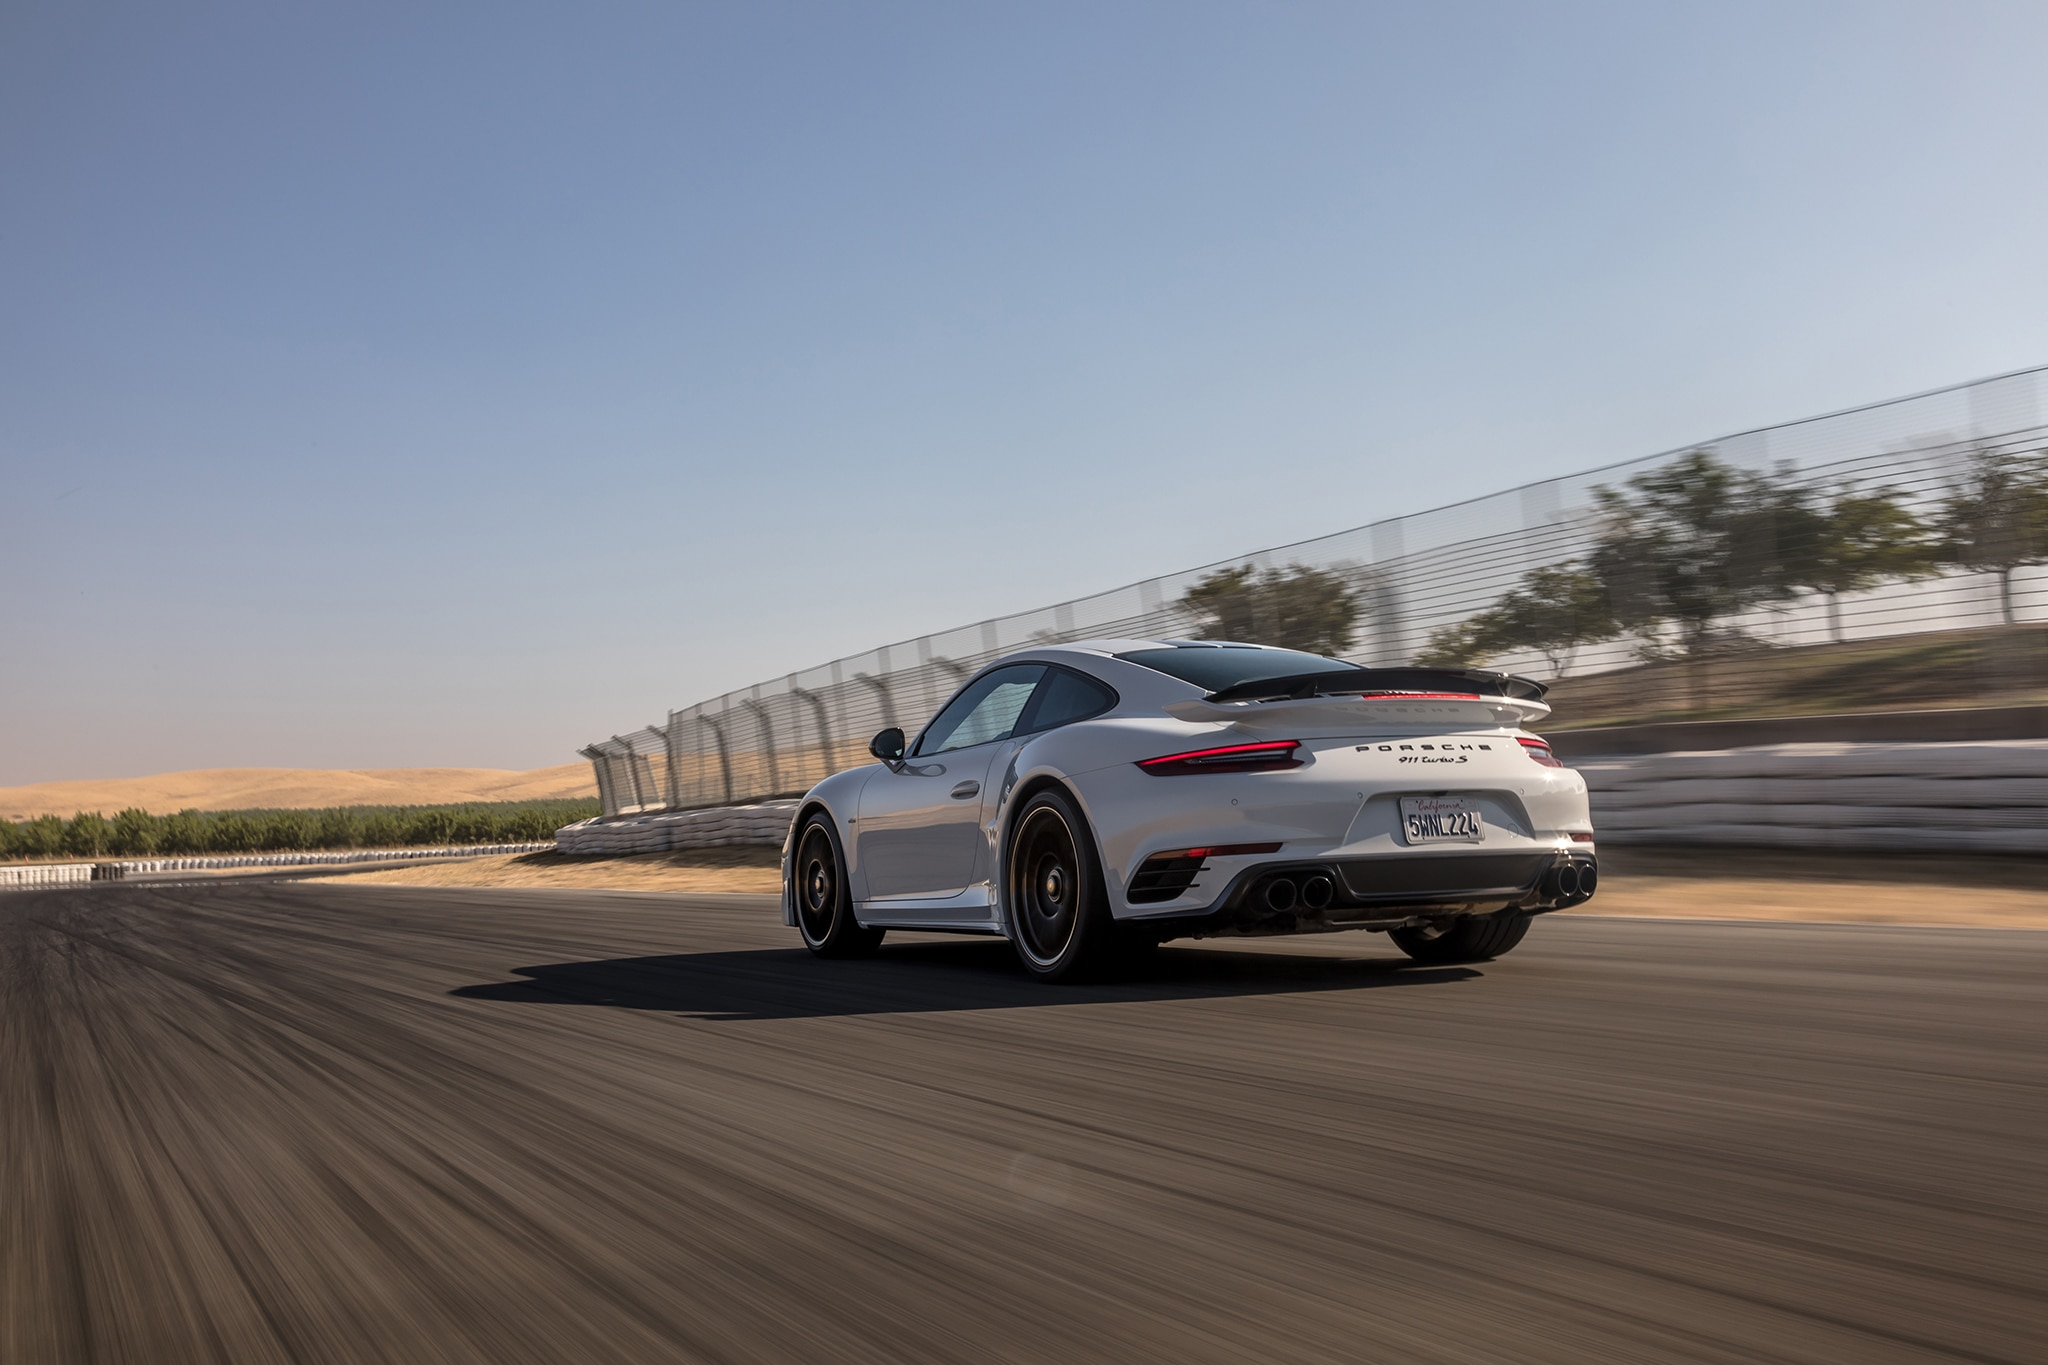 2018 Porsche 911 Turbo S Exclusive Rear Three Quarter In Motion 06